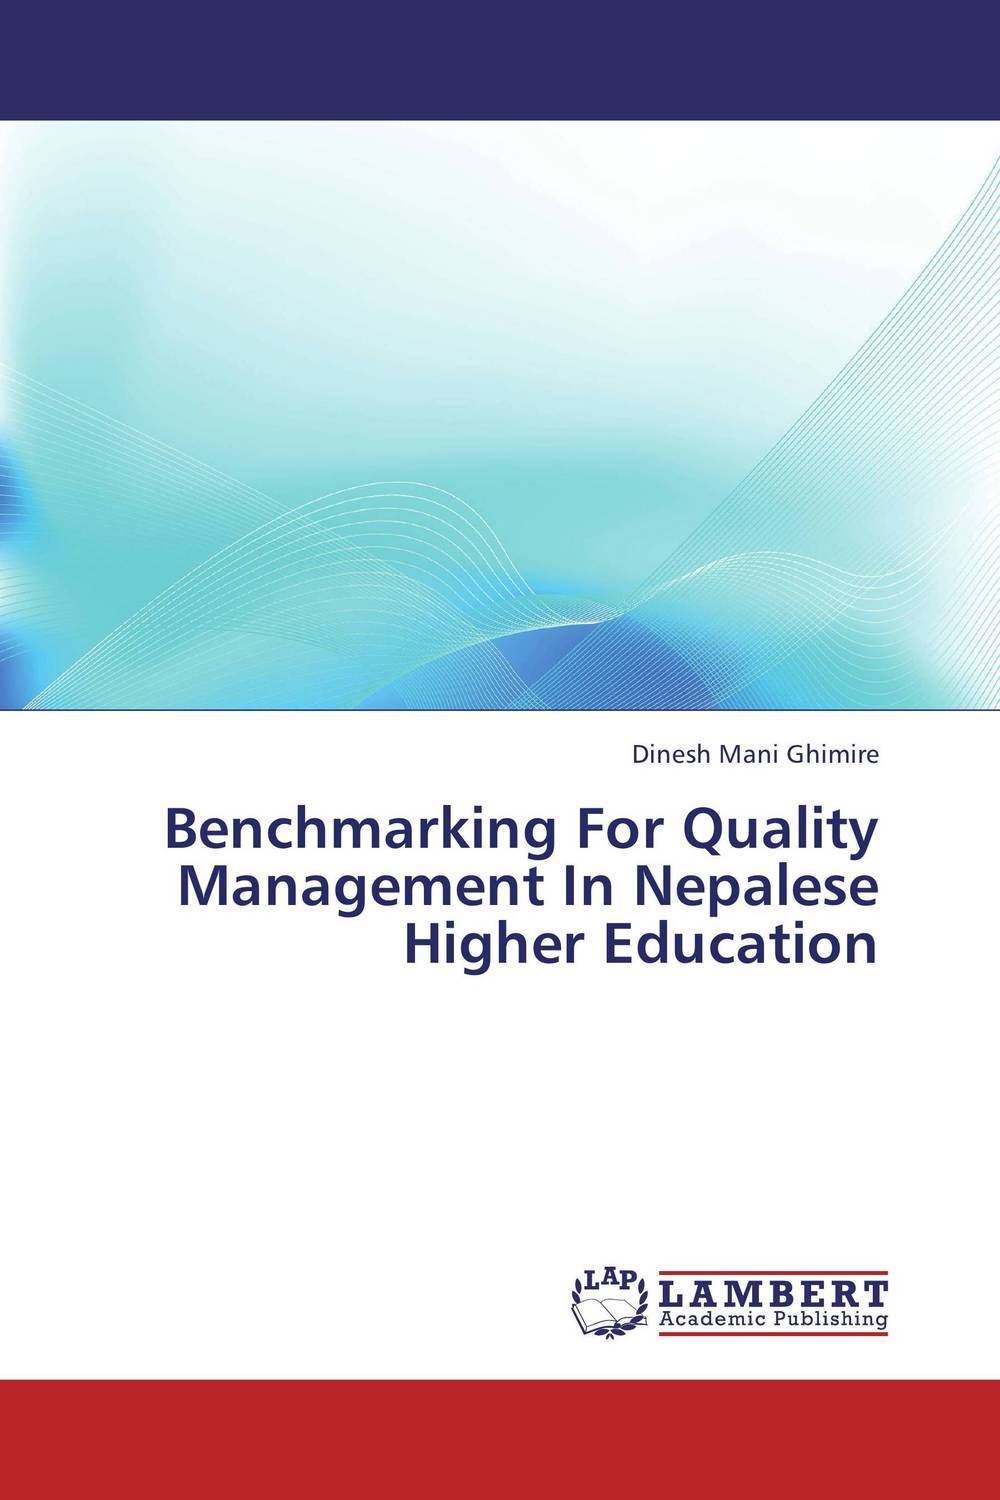 купить Benchmarking For Quality Management In Nepalese Higher Education по цене 4905 рублей